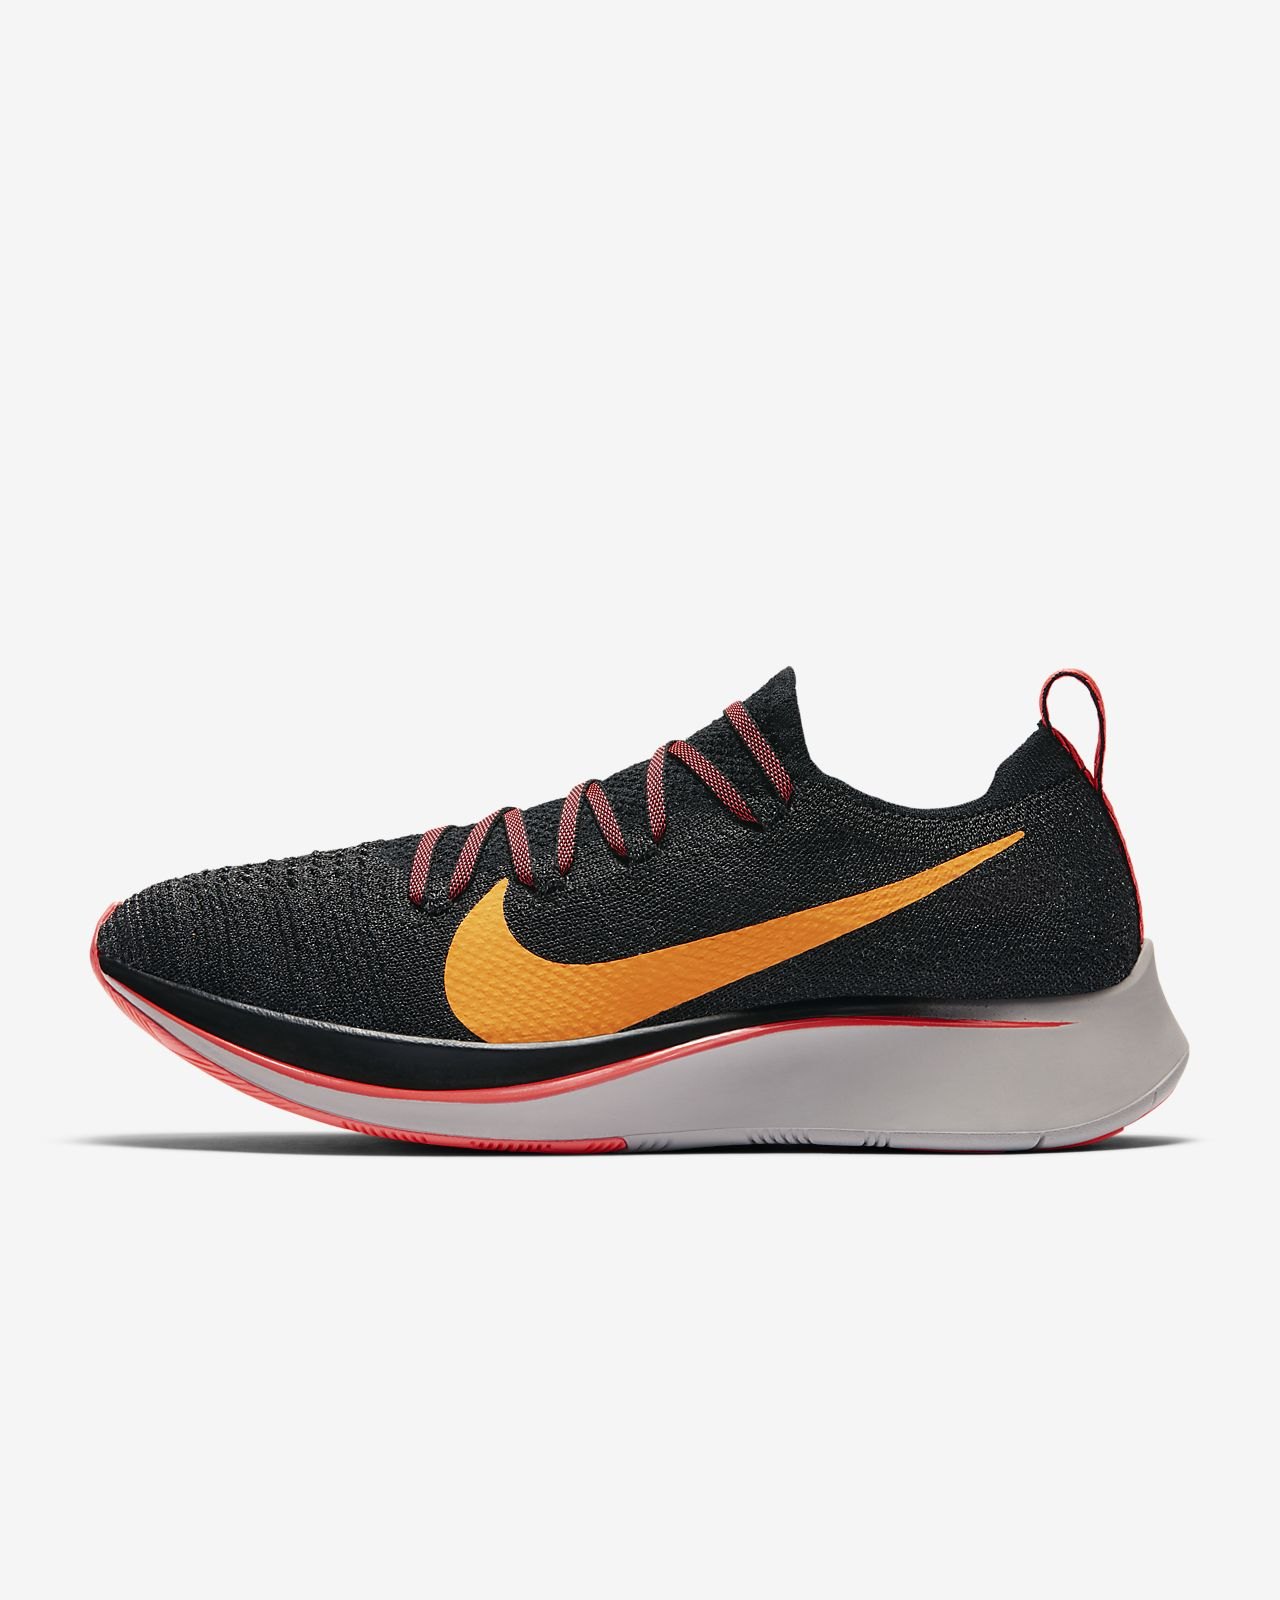 Chaussure Running FemmeCa Flyknit Zoom Pour Fly Nike De ZkPuOXi